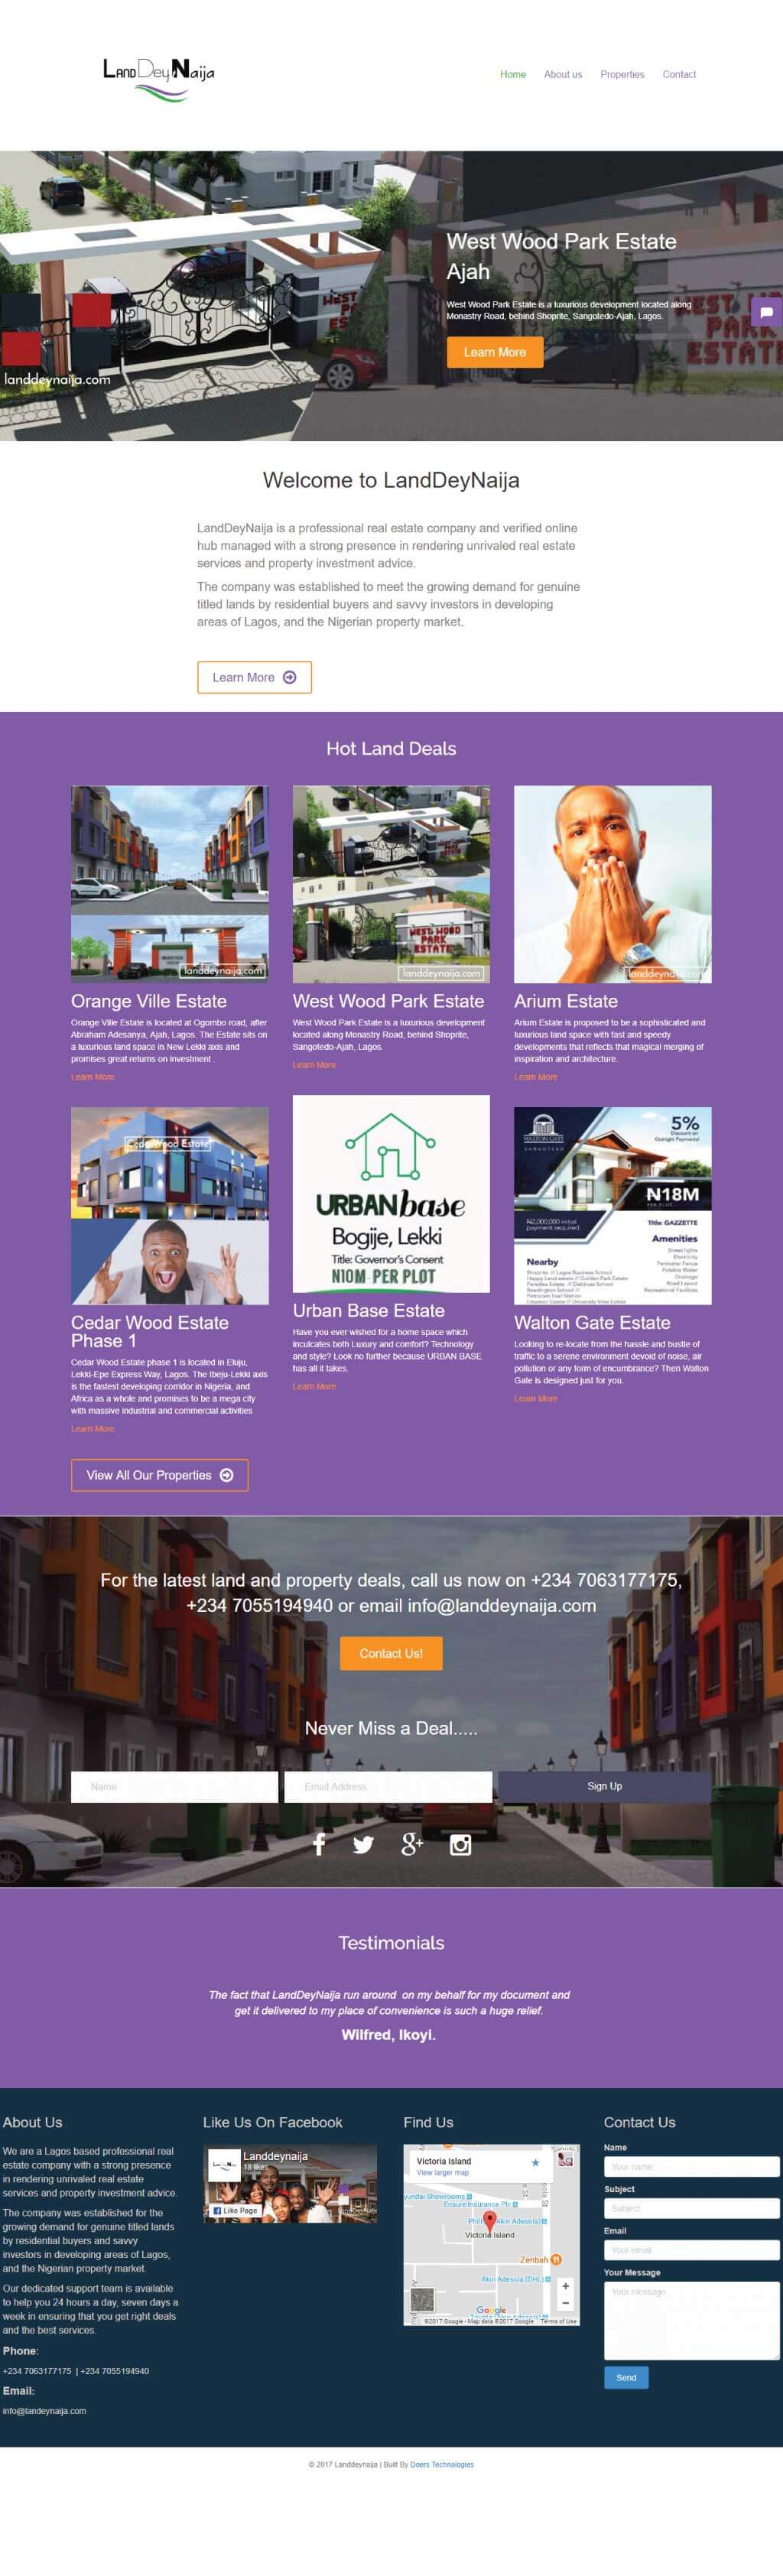 One of our recent Website Design work - Landdeynaija.com